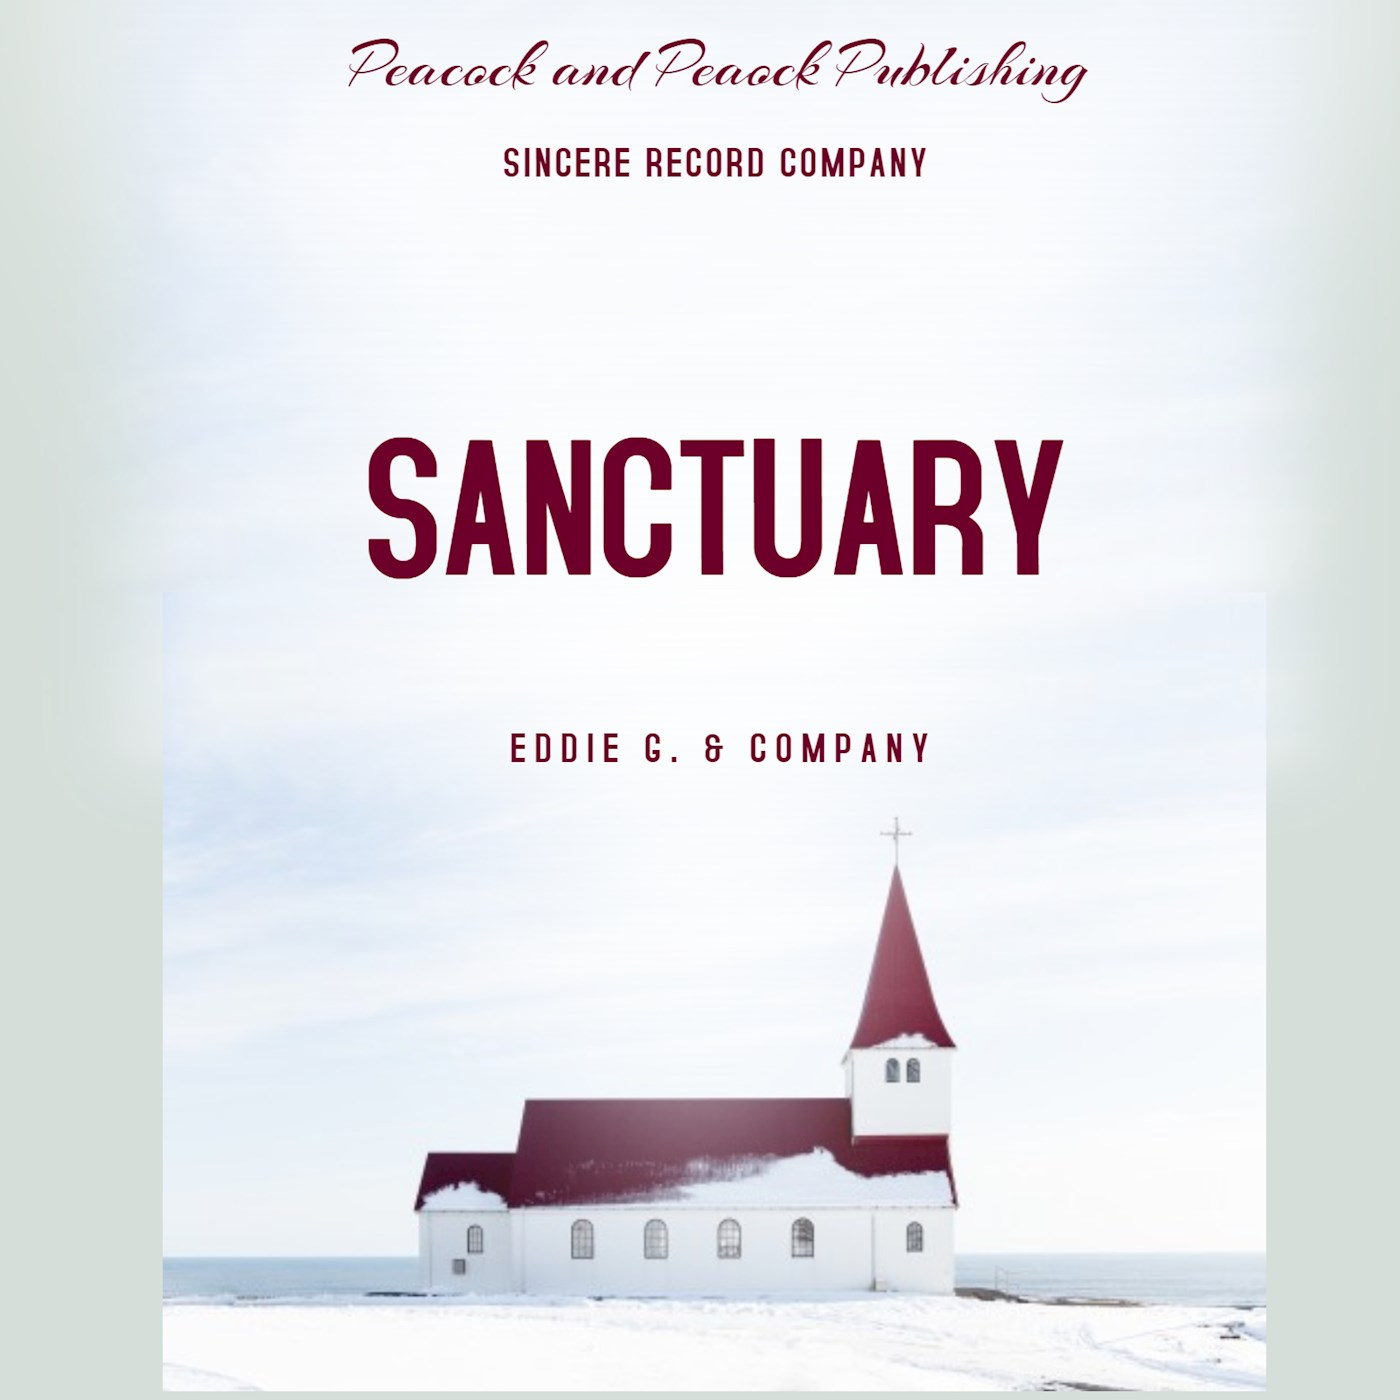 Sanctuary by Eddie G & Company